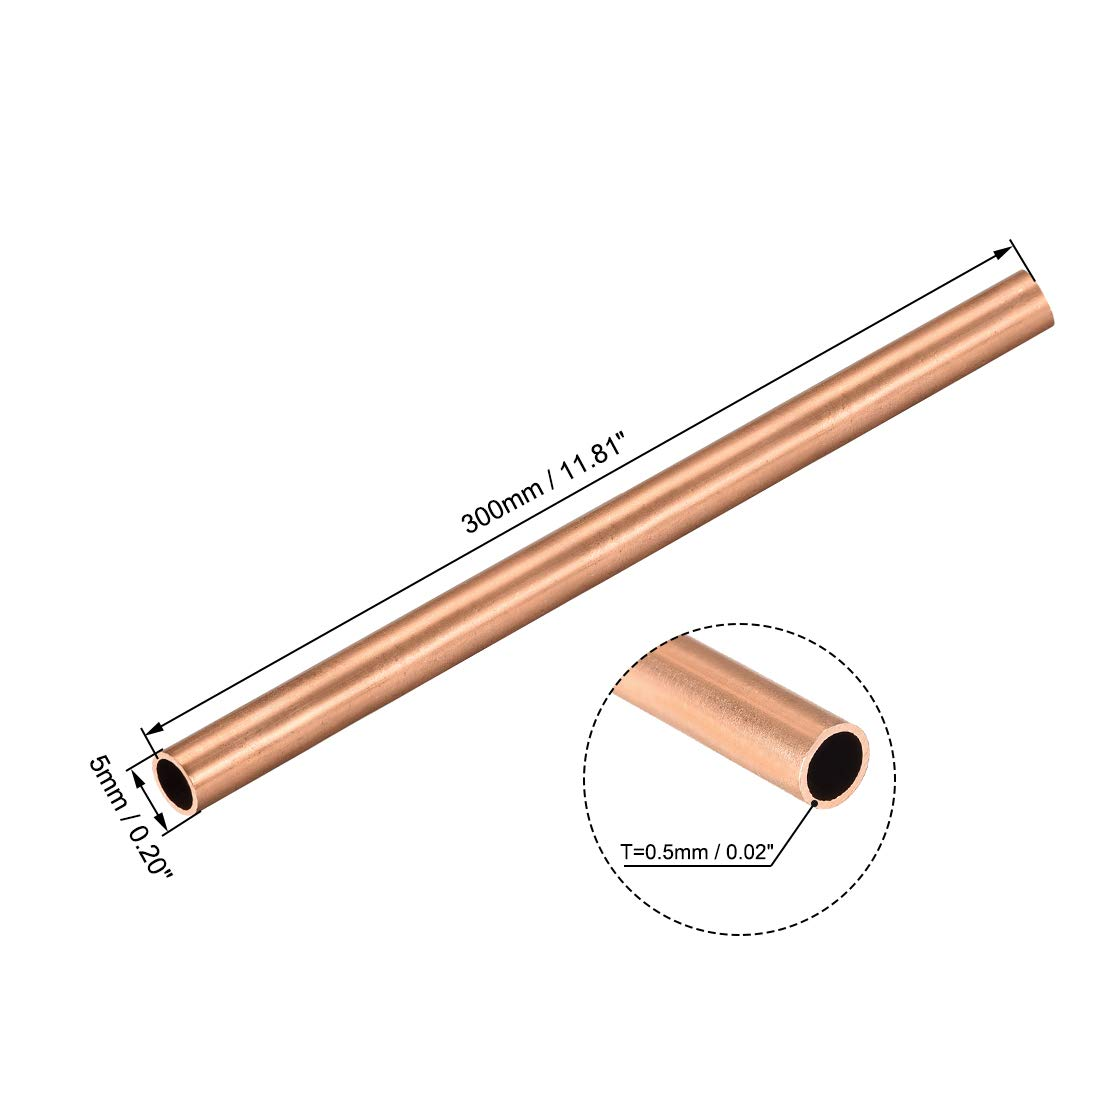 uxcell Copper Round Tube 10mm OD 1mm Wall Thickness 300mm Long Hollow Straight Pipe Tubing 2 Pcs